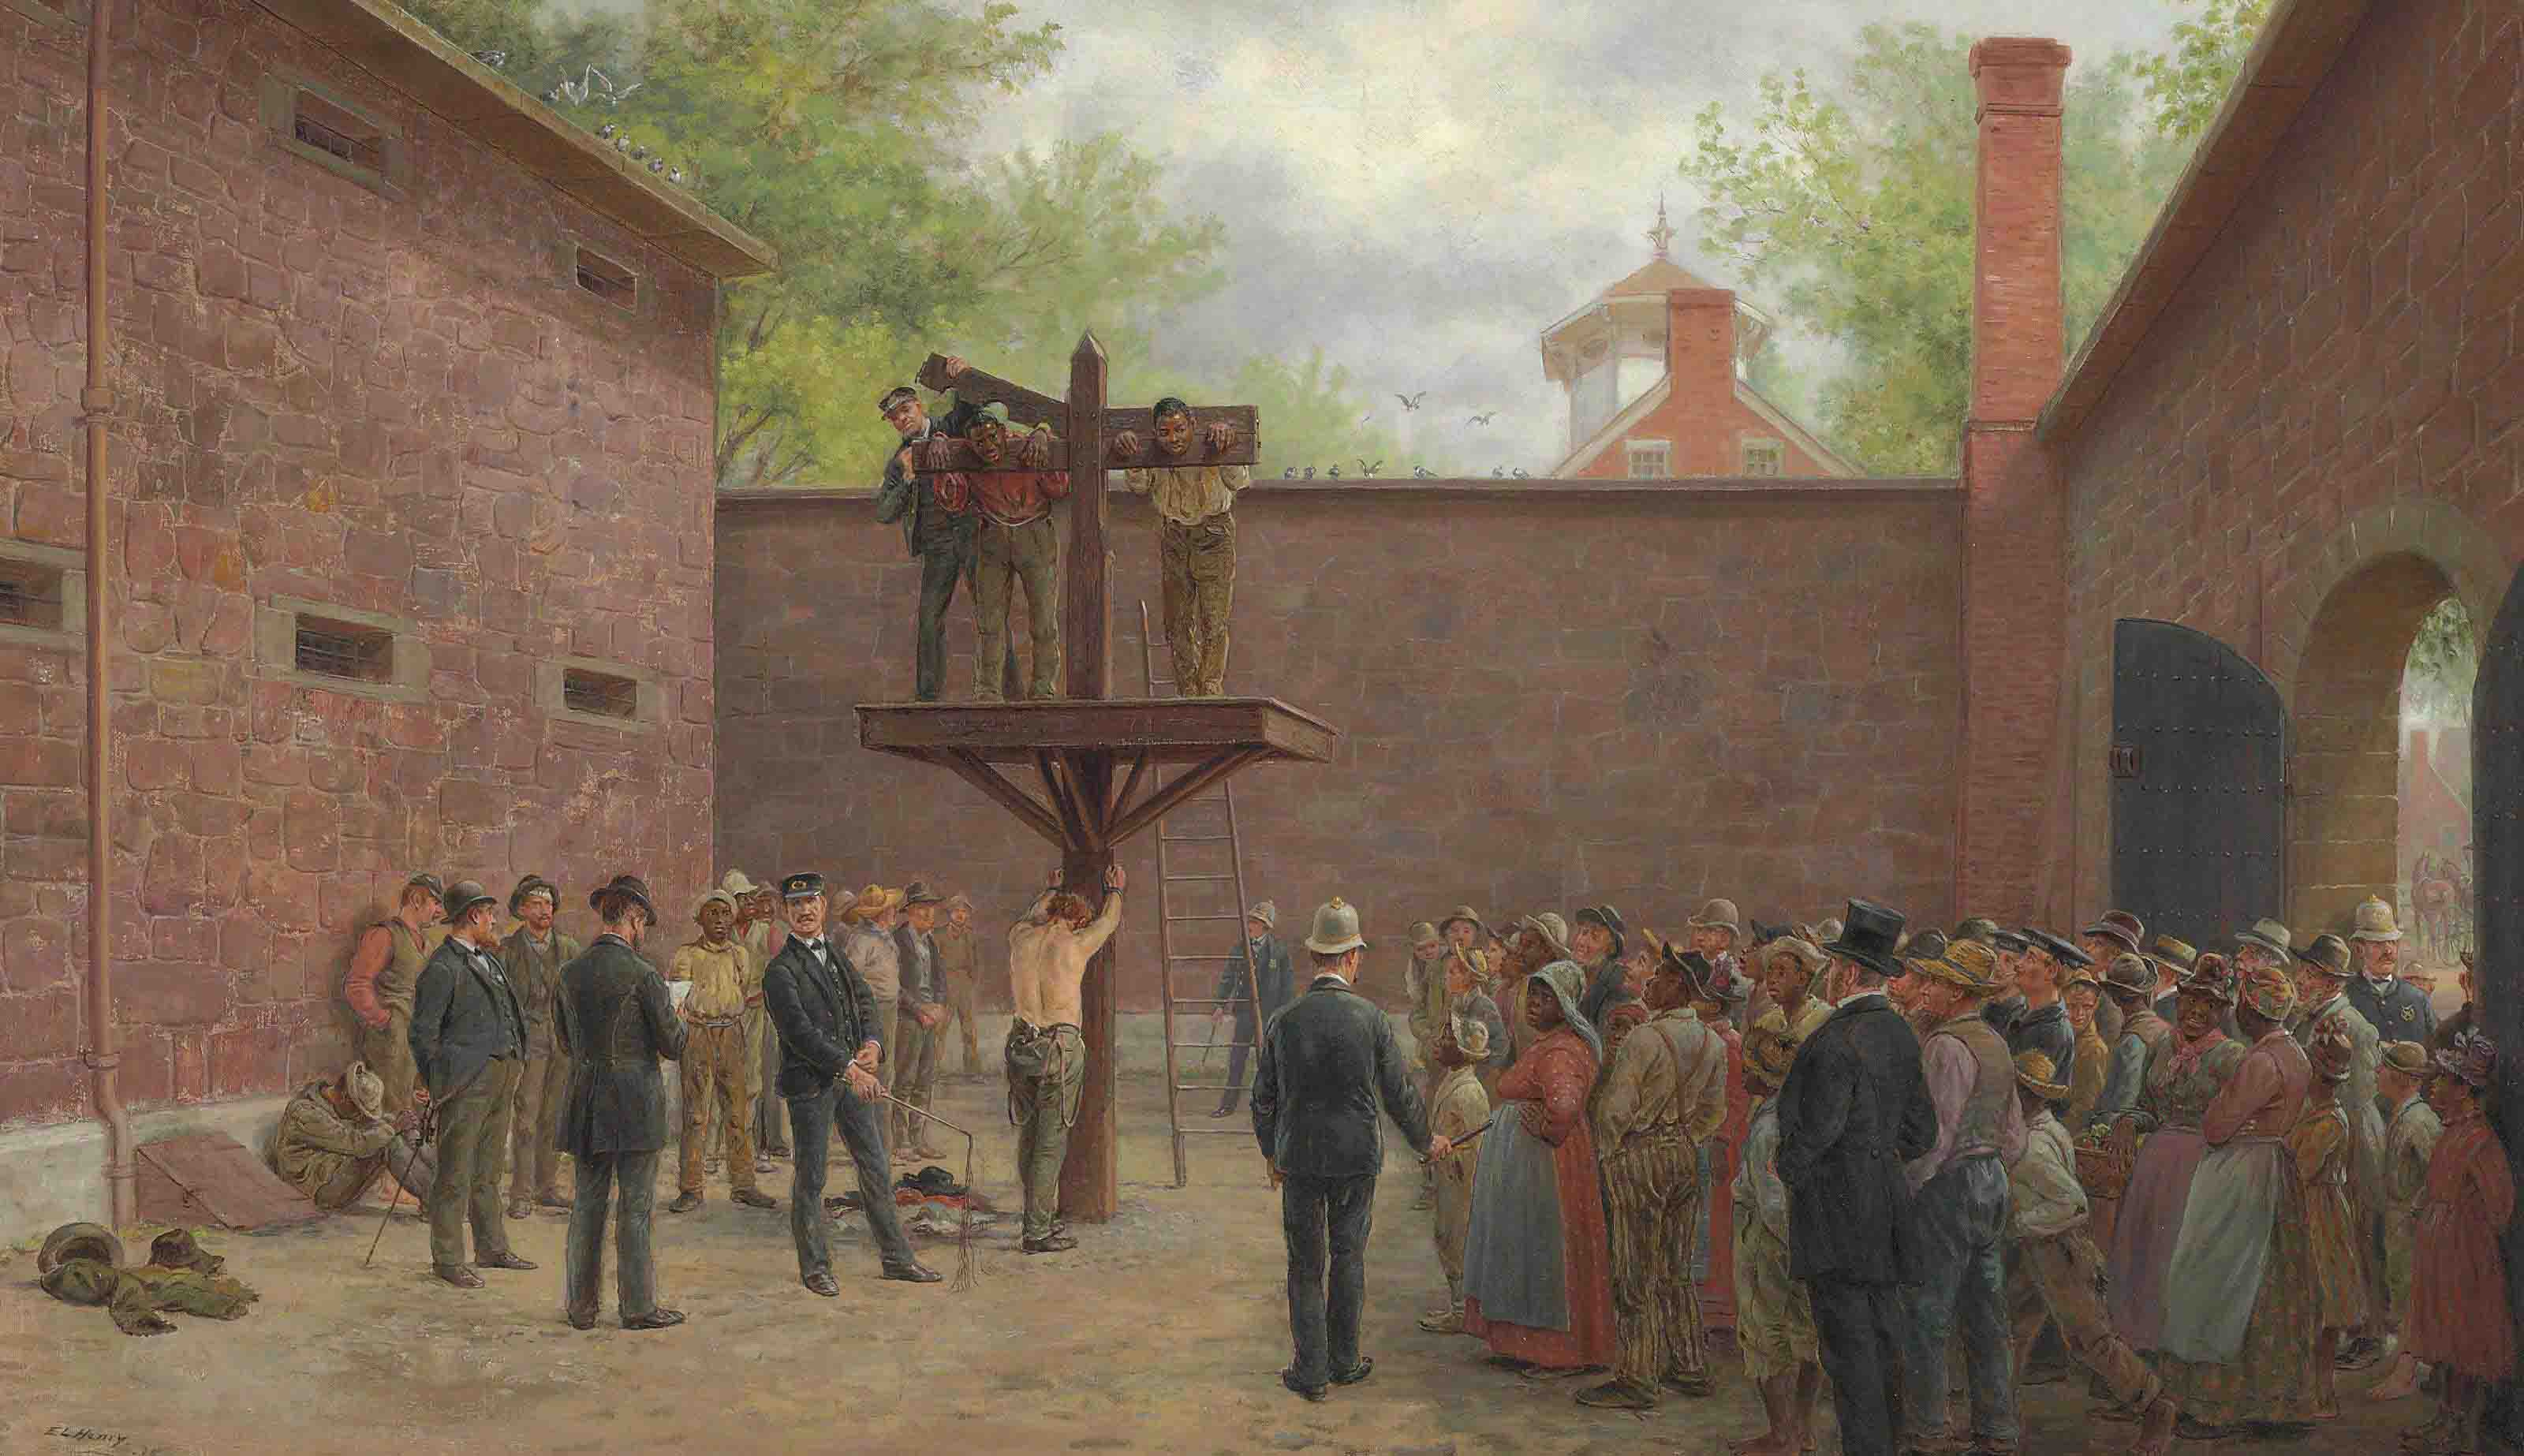 The Pillory and Whipping Post, New Castle, Delaware